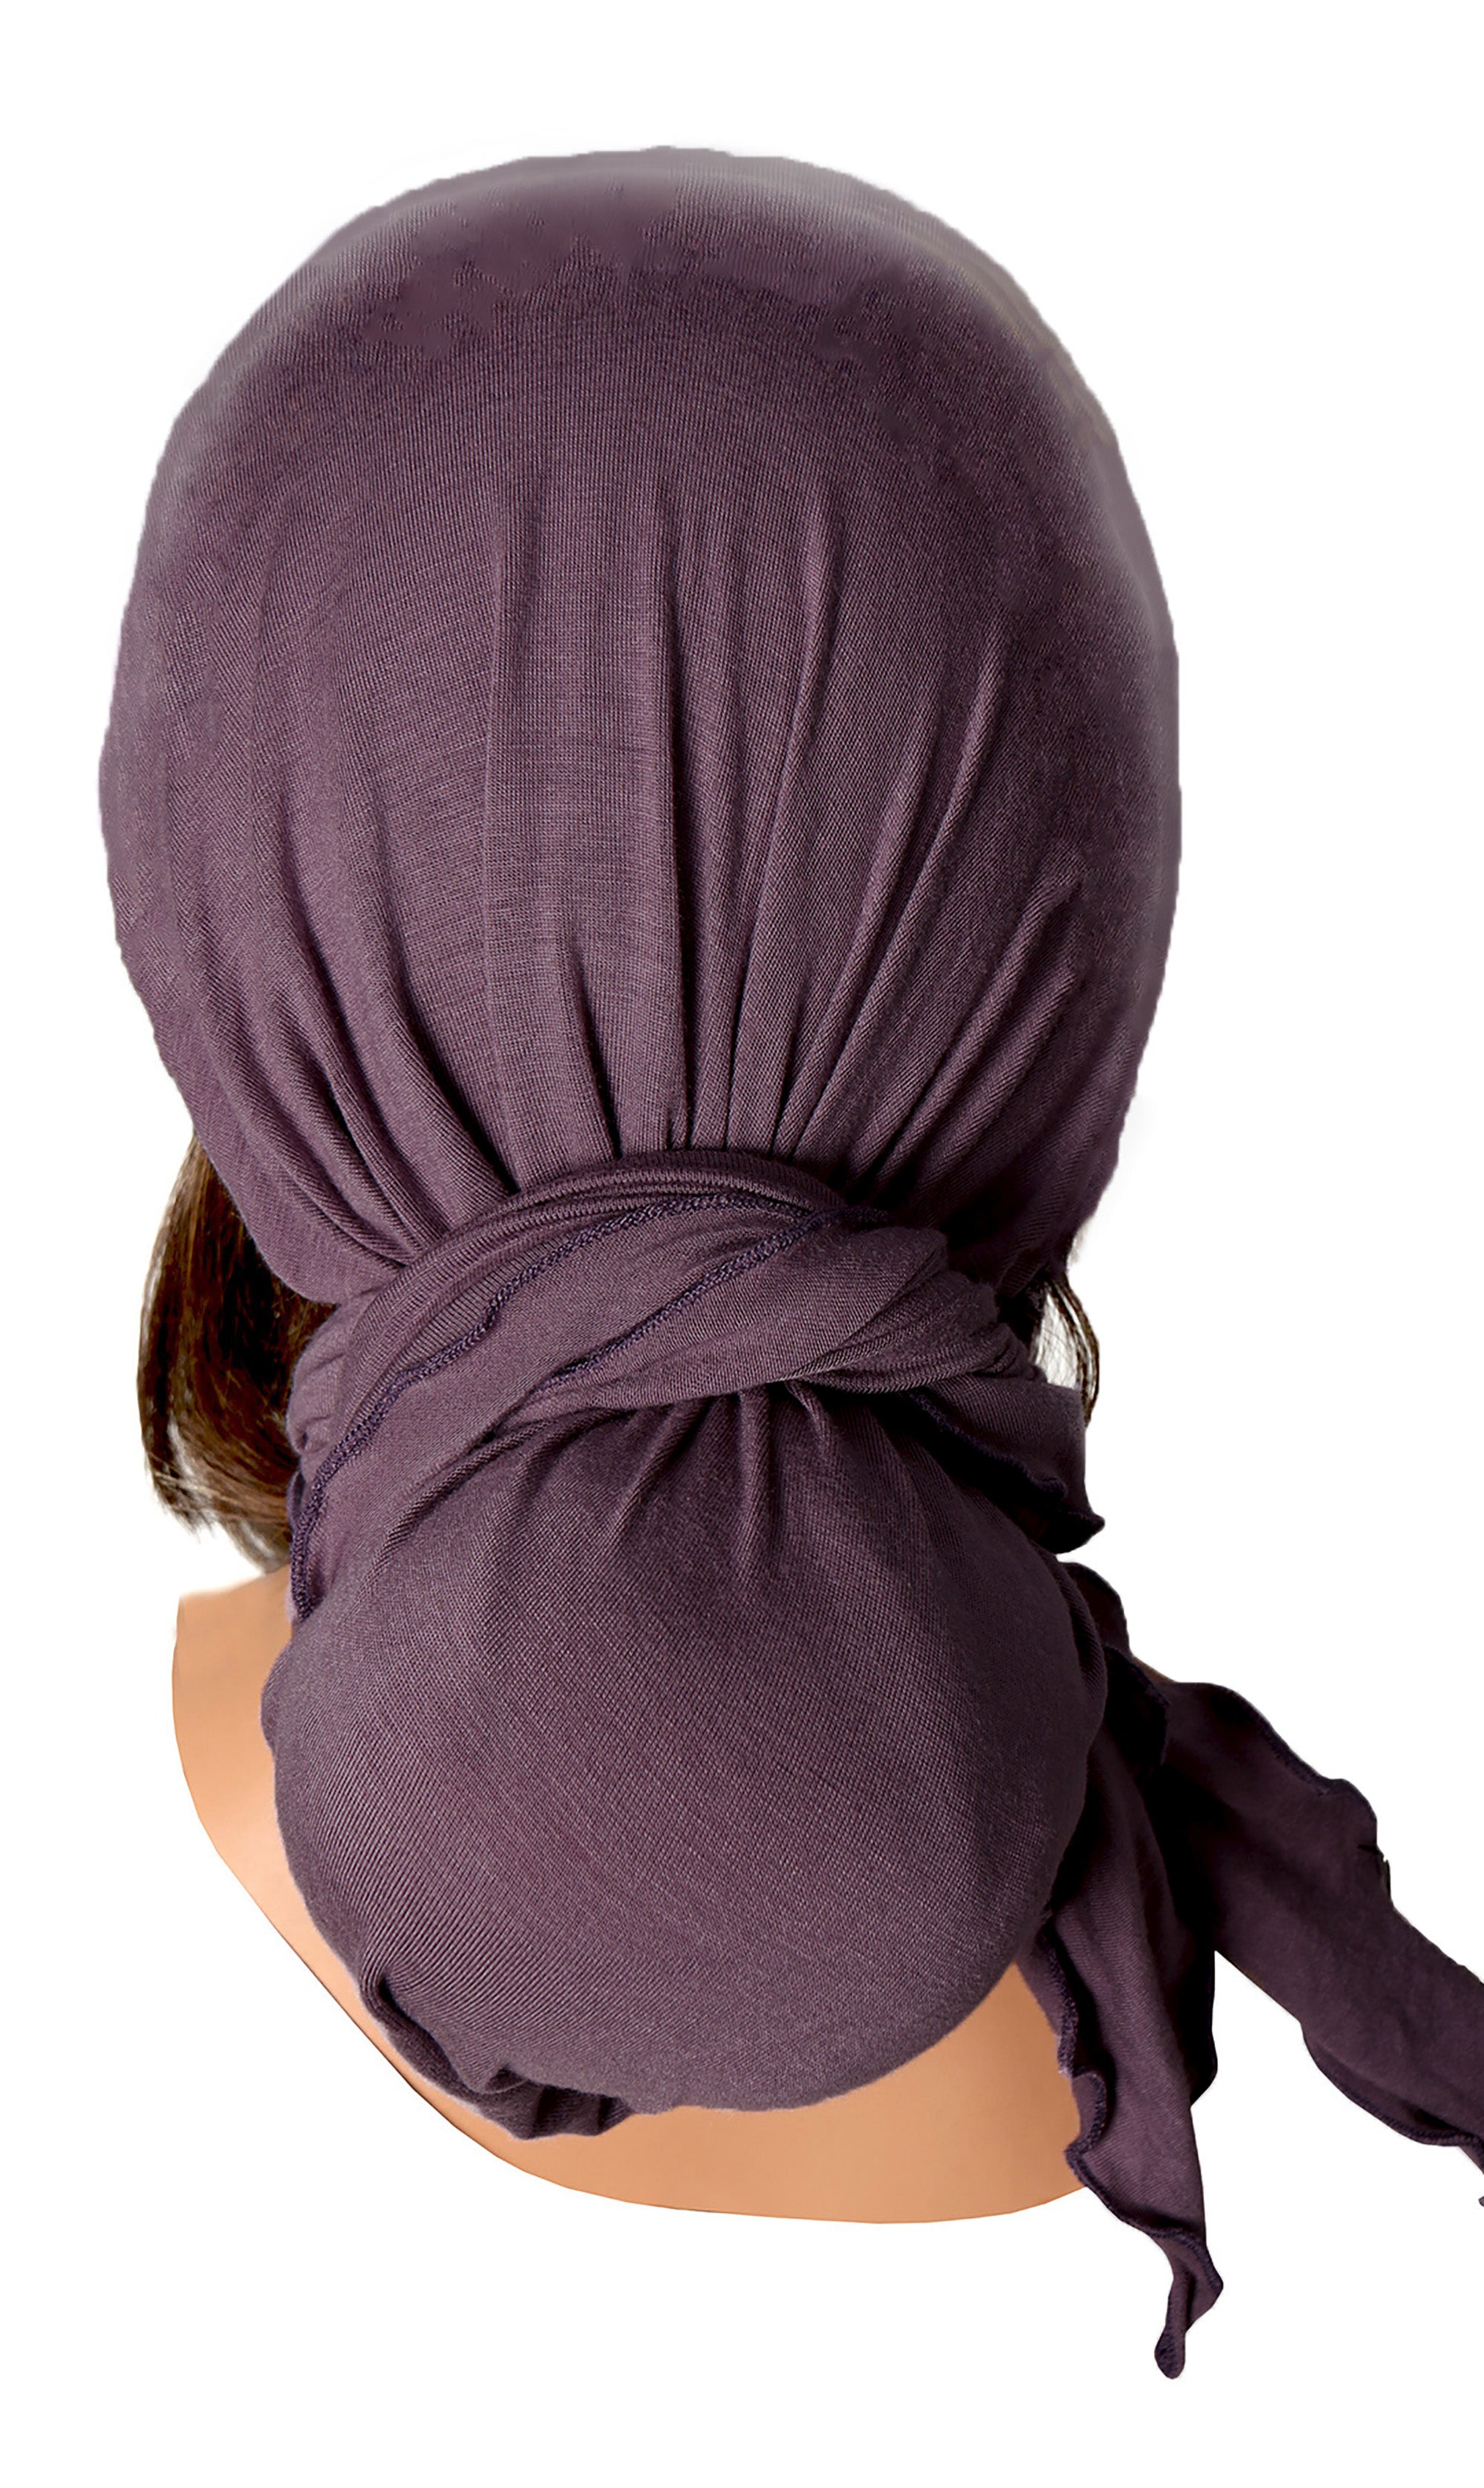 Long vintage lavender cotton headscarf